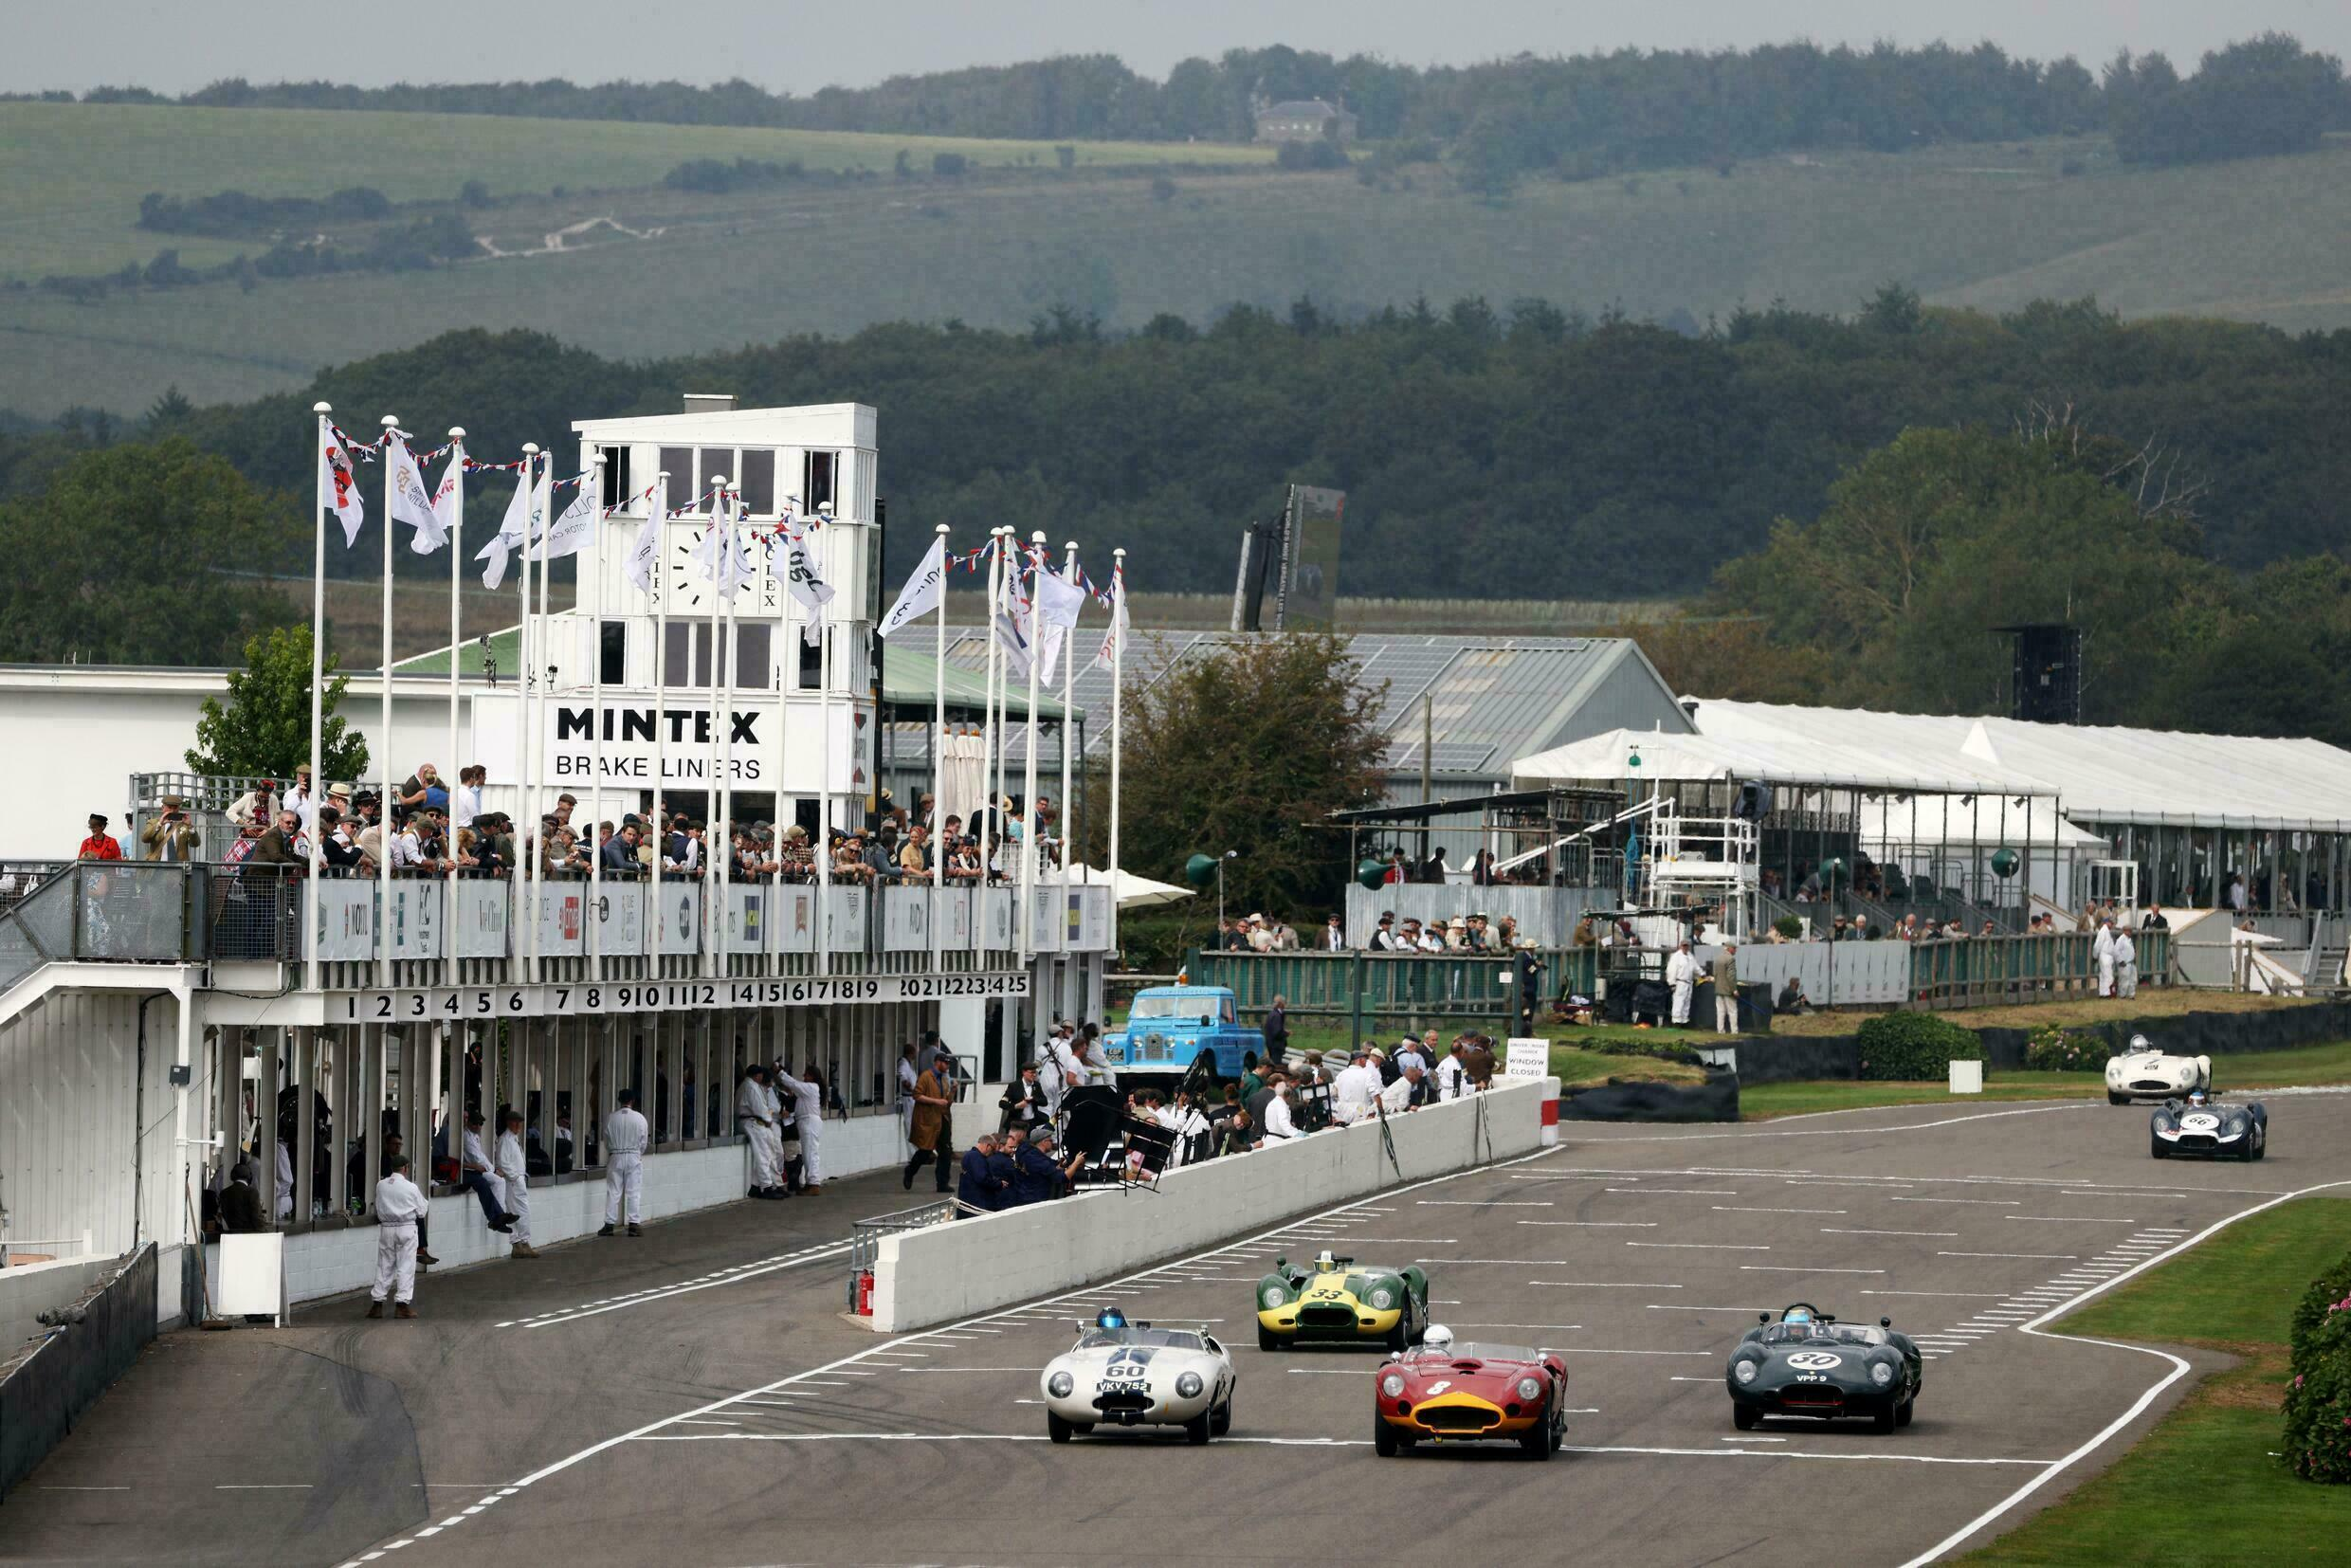 Enthusiasts bringing cars to the Goodwood Revival meeting in southern England from across the Channel faced reams of paperwork